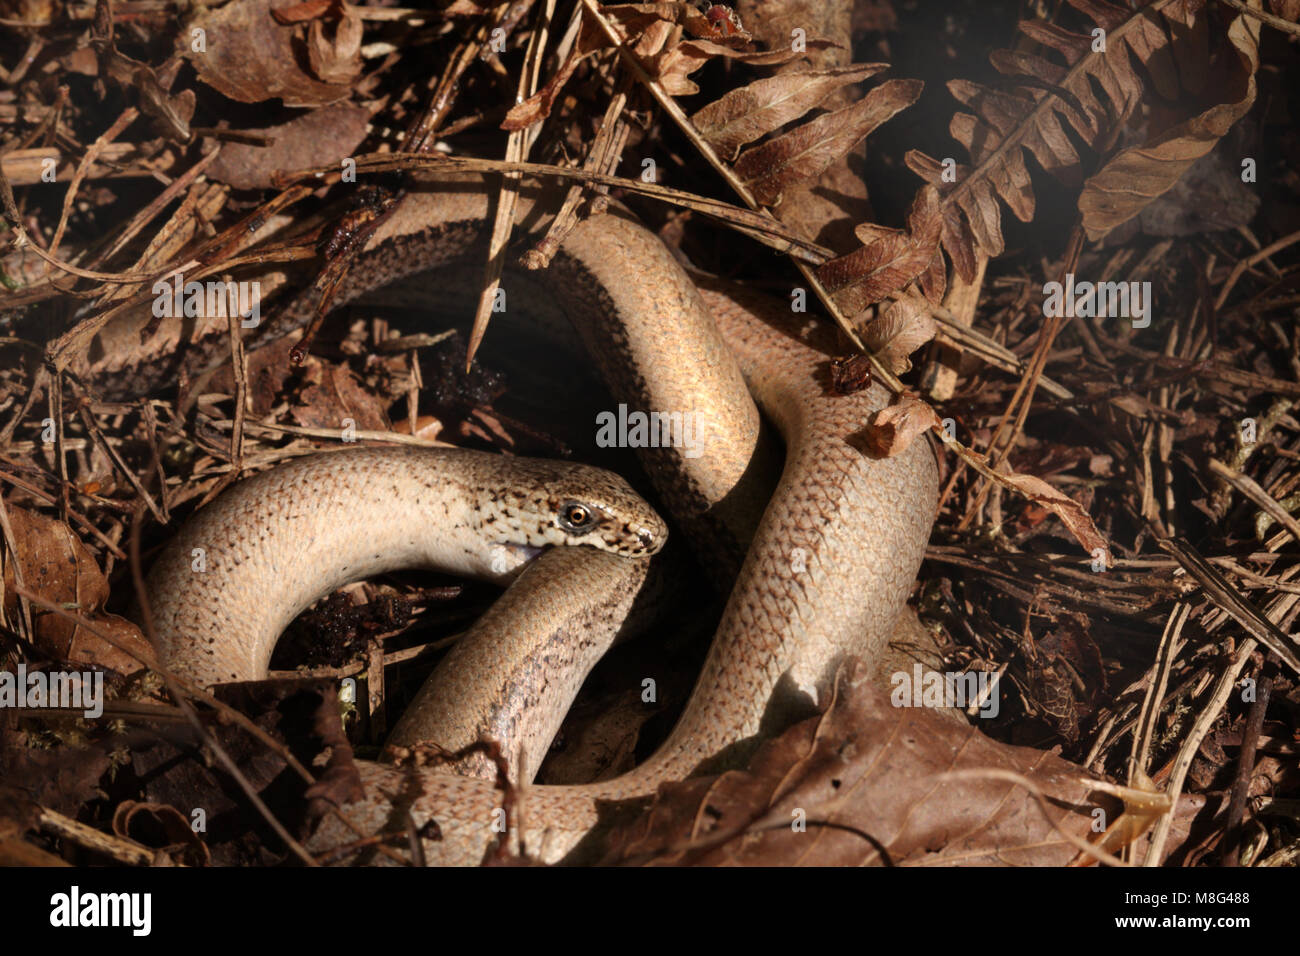 Mating slow worms, Anguis fragilis Stock Photo